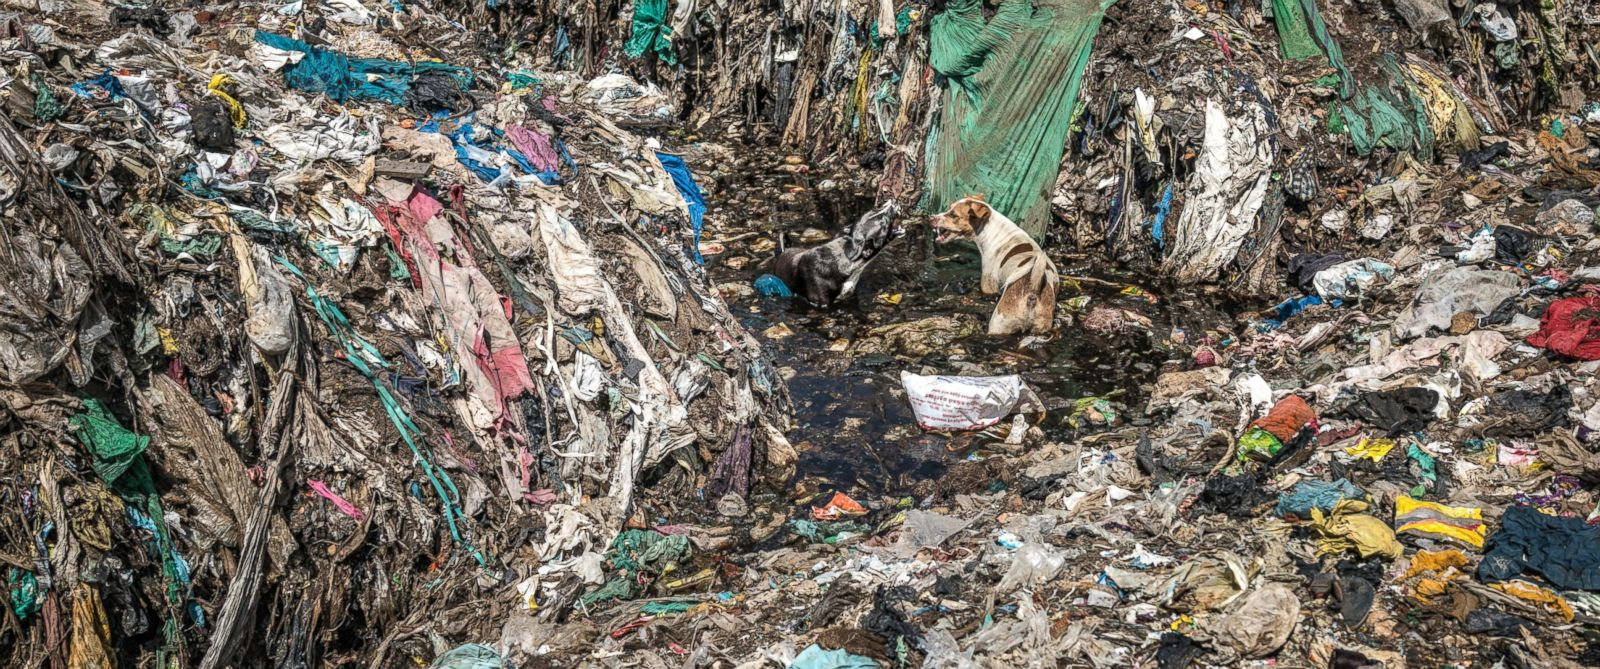 photographer captures plastic pollution nightmare in ahead photo two stray dogs face off in contaminated water seeping in from a landfill dump